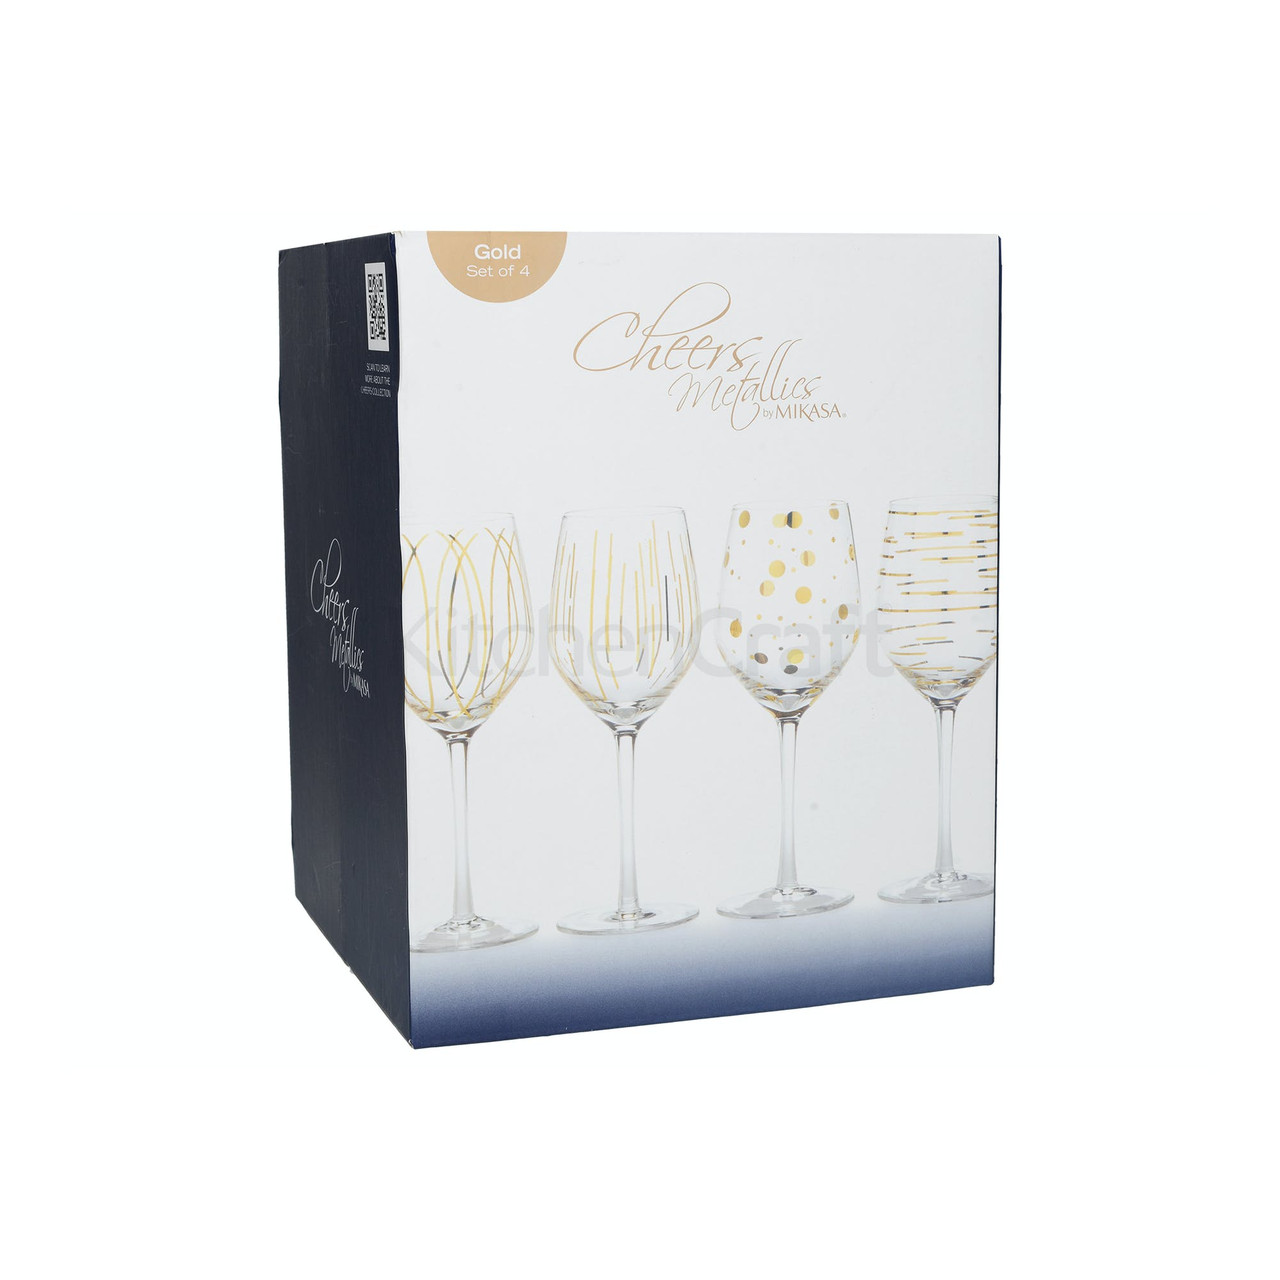 Mikasa Cheers Metallic Gold Set Of 4 14Oz Wine Glasses (LOCAL DELIVERY ONLY)